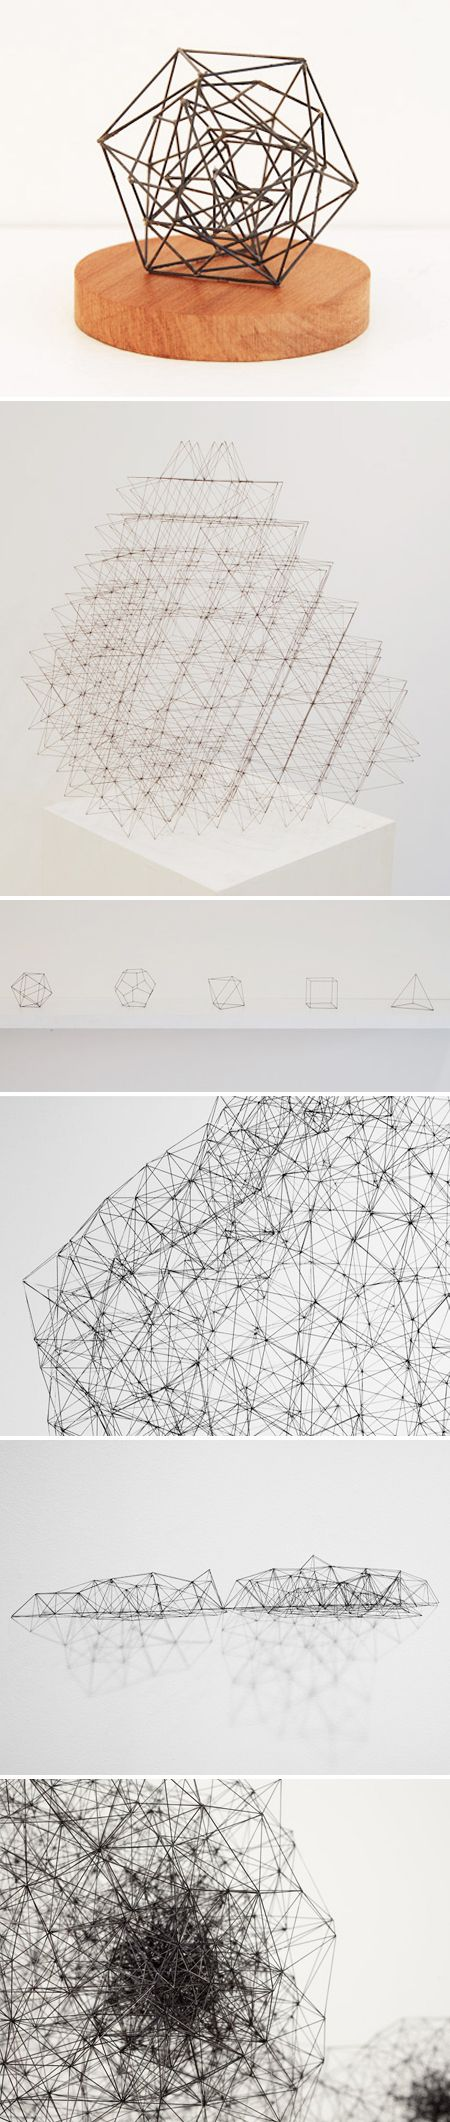 Pencil leads. Elaborate sculptures made from teeny tiny pencil leads fused together {somehow?!}. Seriously. This stunning work is by New Zealand artist Peter Trevelyan.